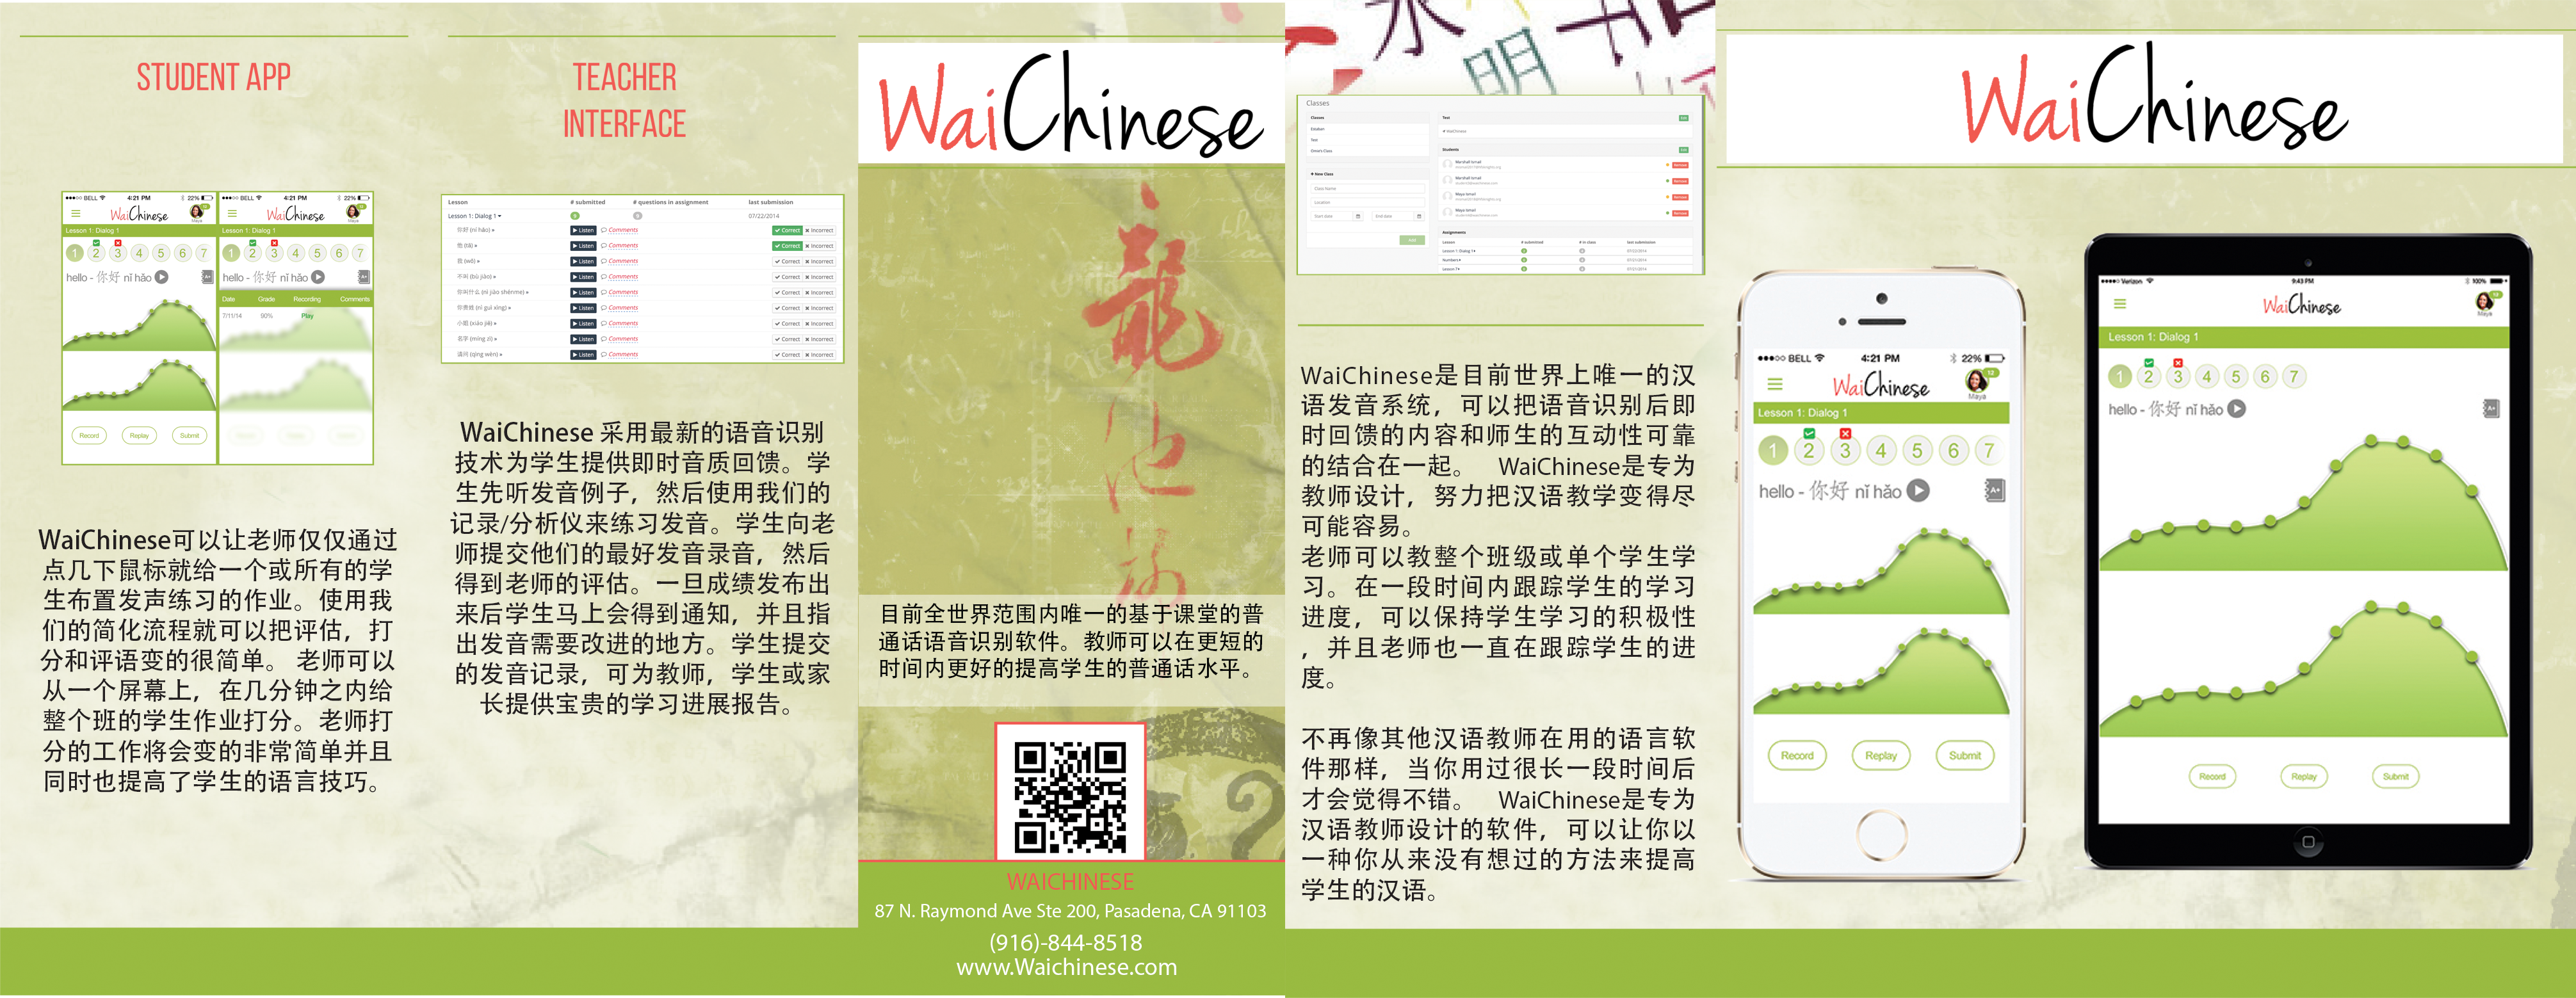 WaiChinese Brochure(Chinese)